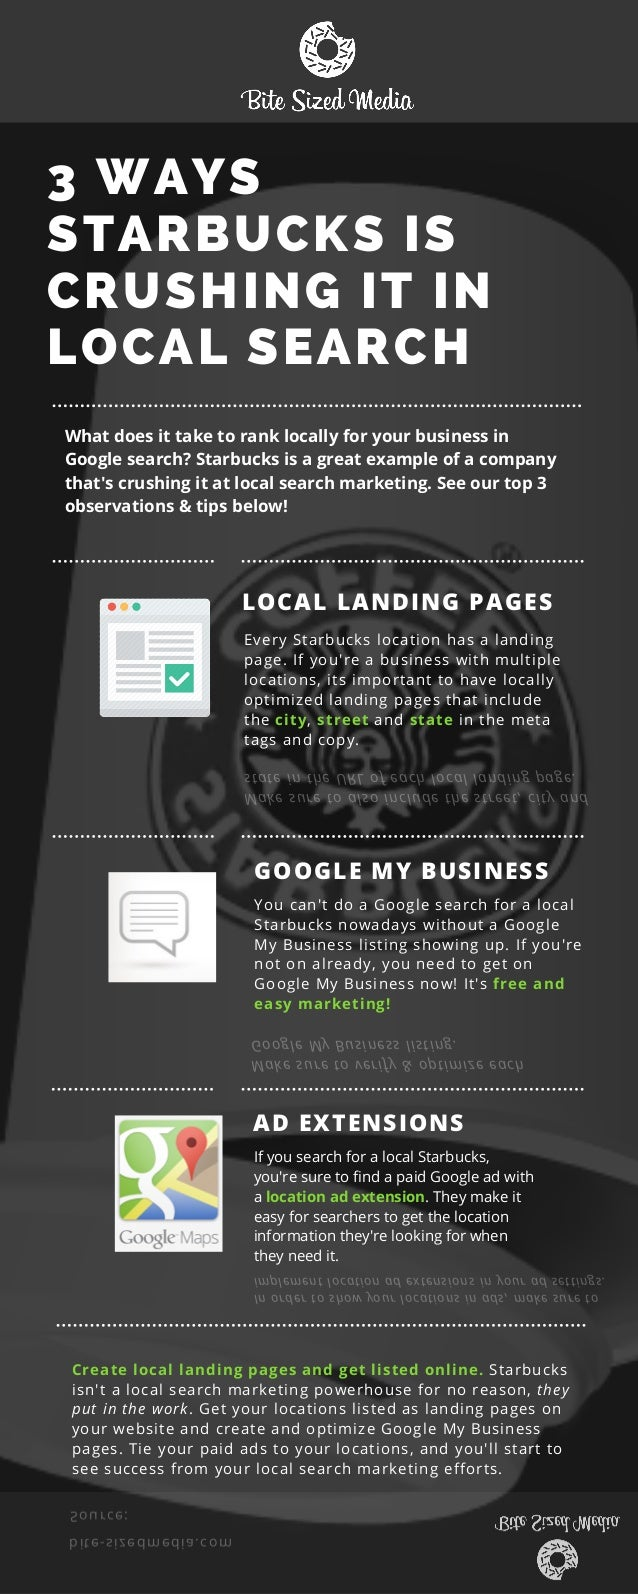 What does it take to rank locally for your business in Google search? Starbucks is a great example of a company that's cru...